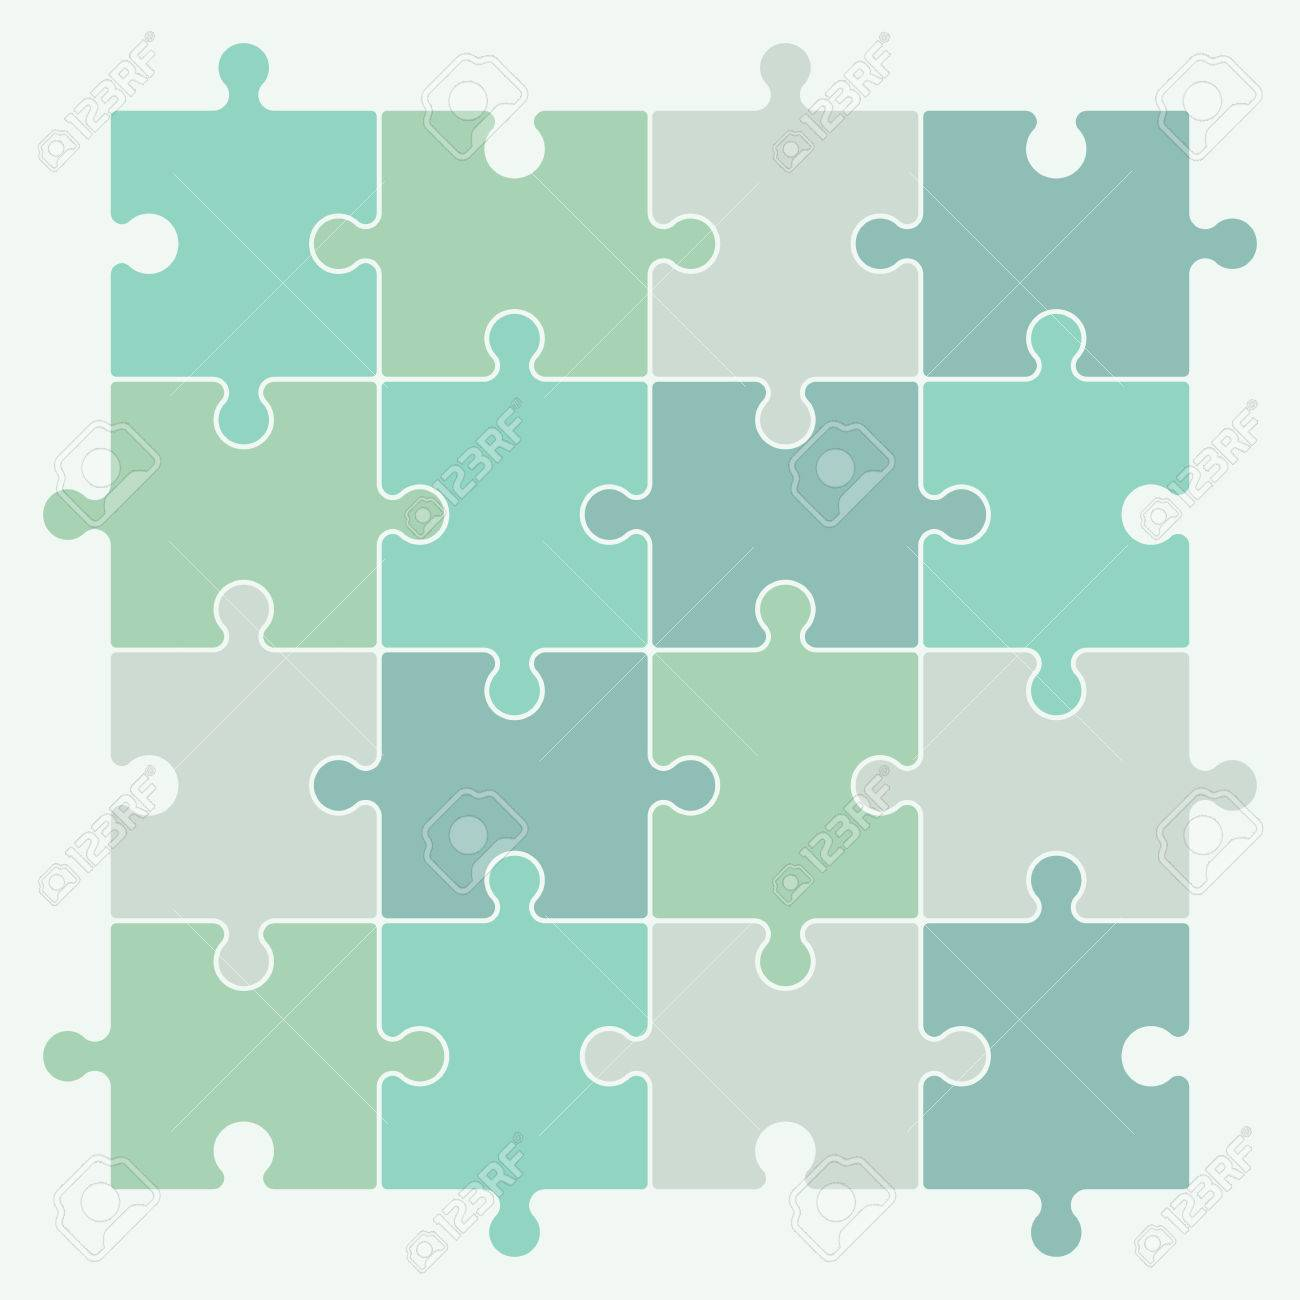 Green puzzle pieces forming a pattern background. Vector illustration graphic. - 40590539